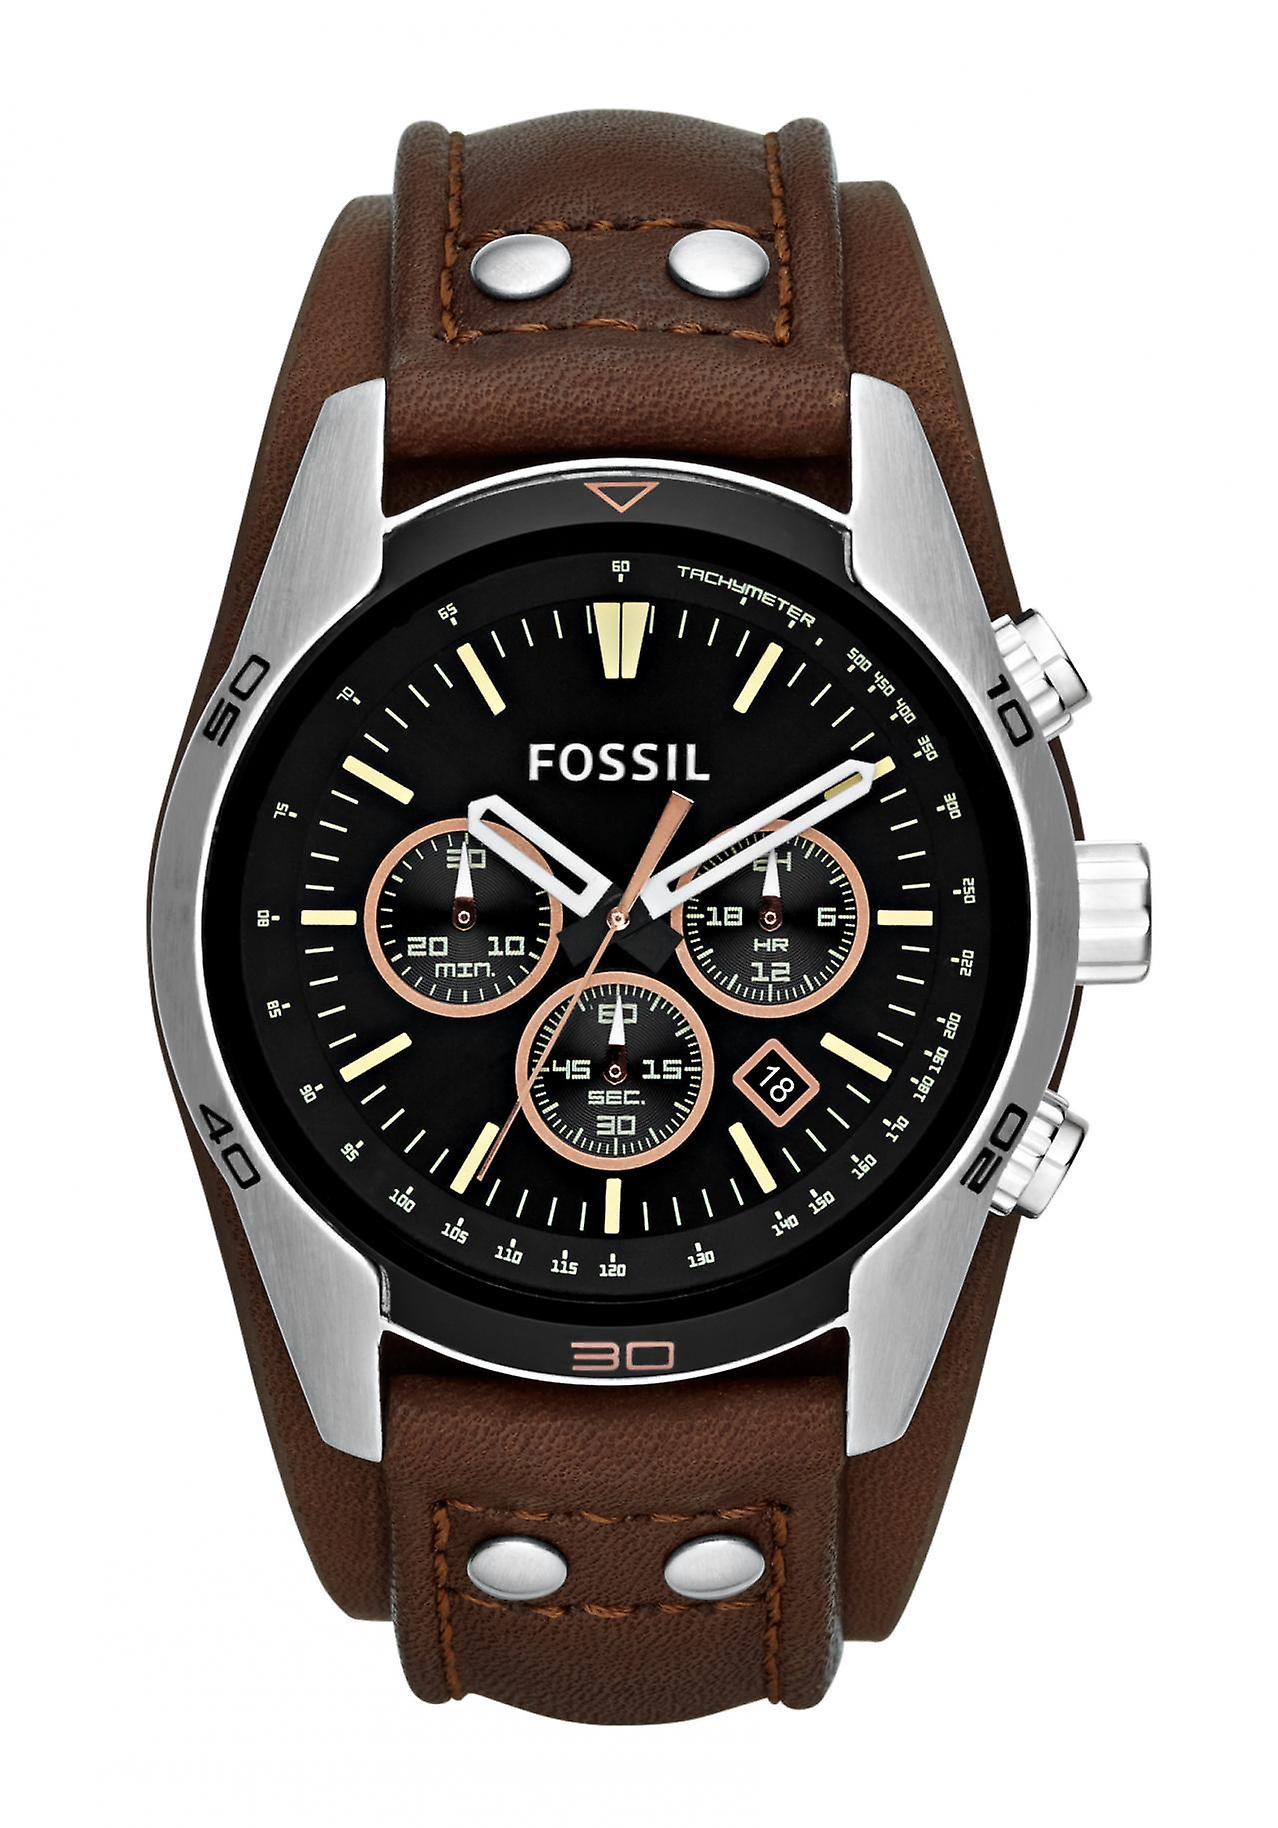 Coachman fossili Herrenchronograph (CH2891)